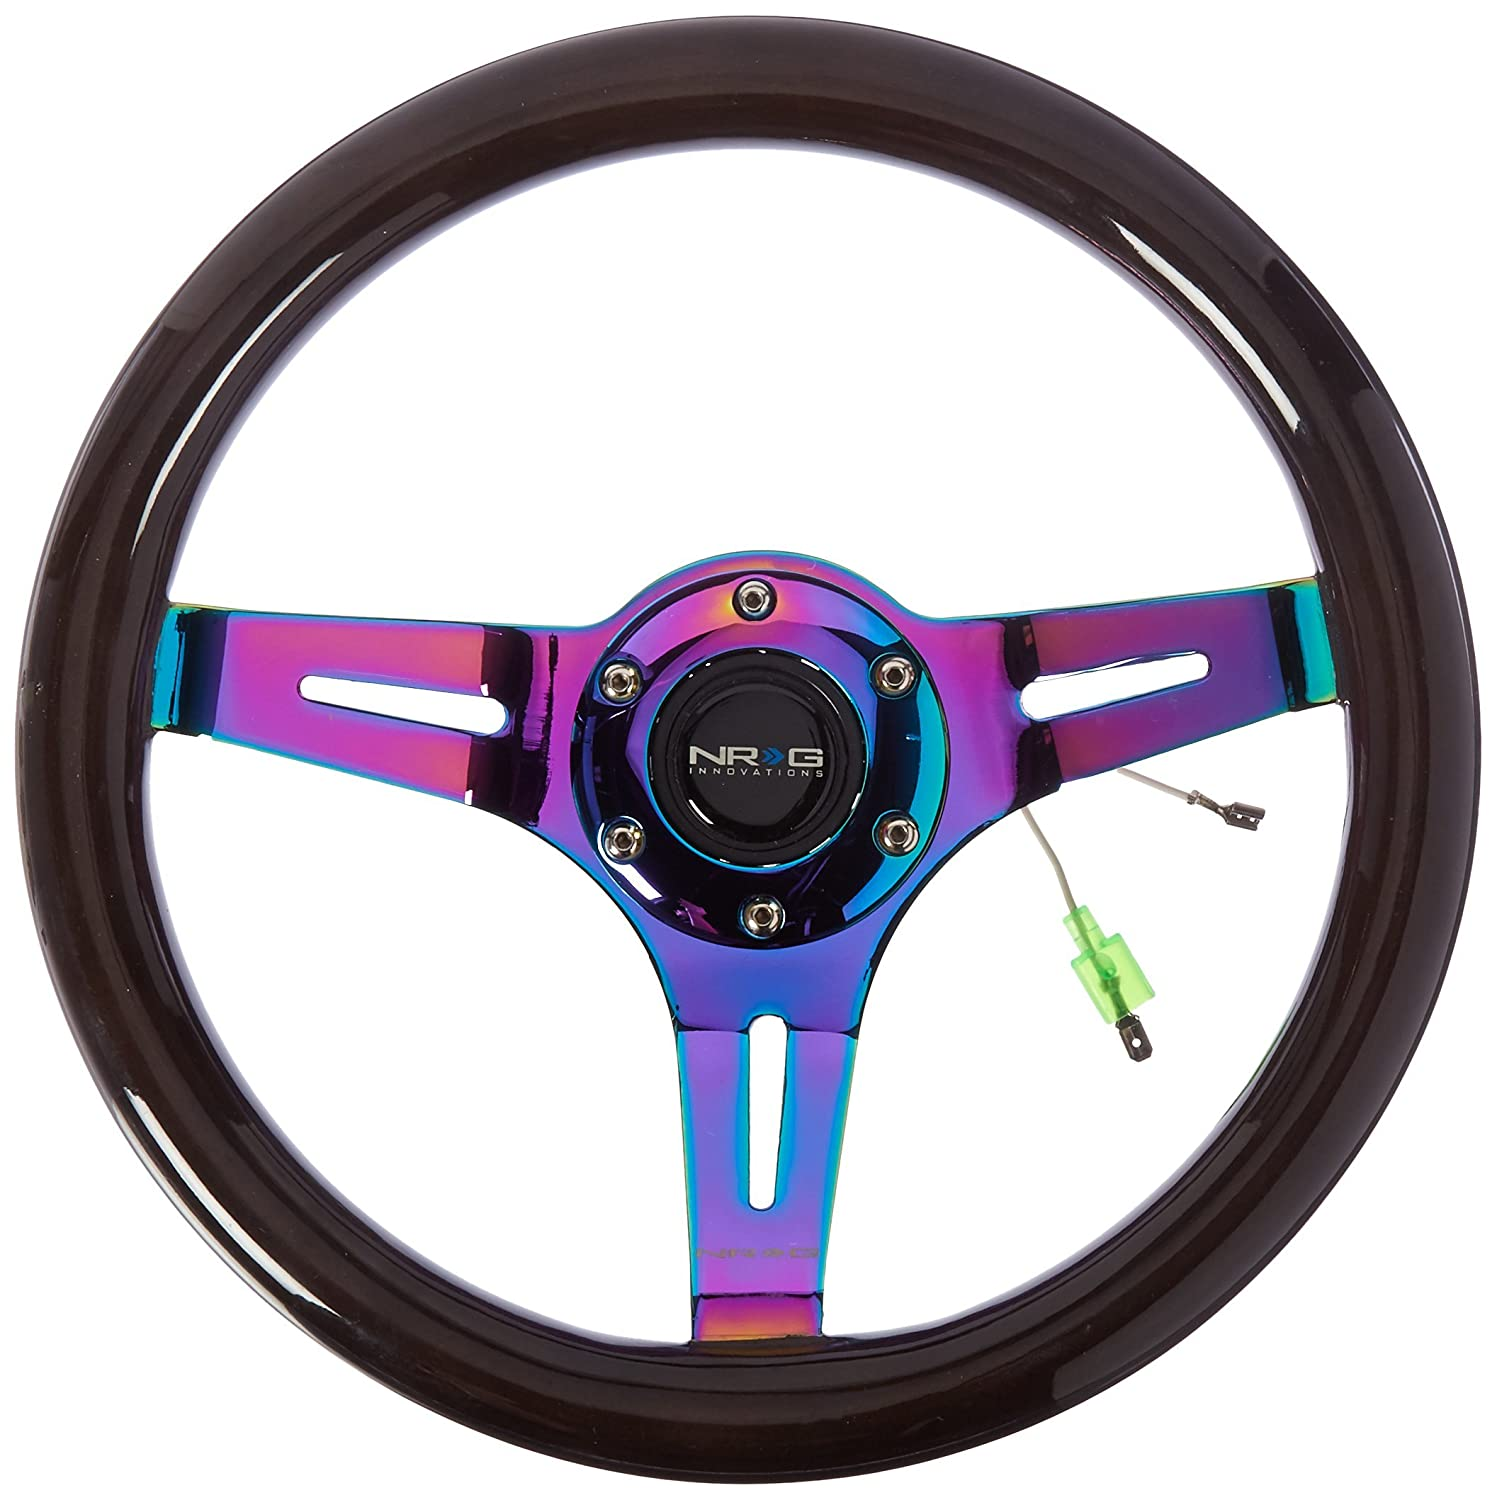 NRG Innovations ST-310BK-MC Classic Black Wood Grain Wheel (310mm, 3 Spoke Center in Neochrome)